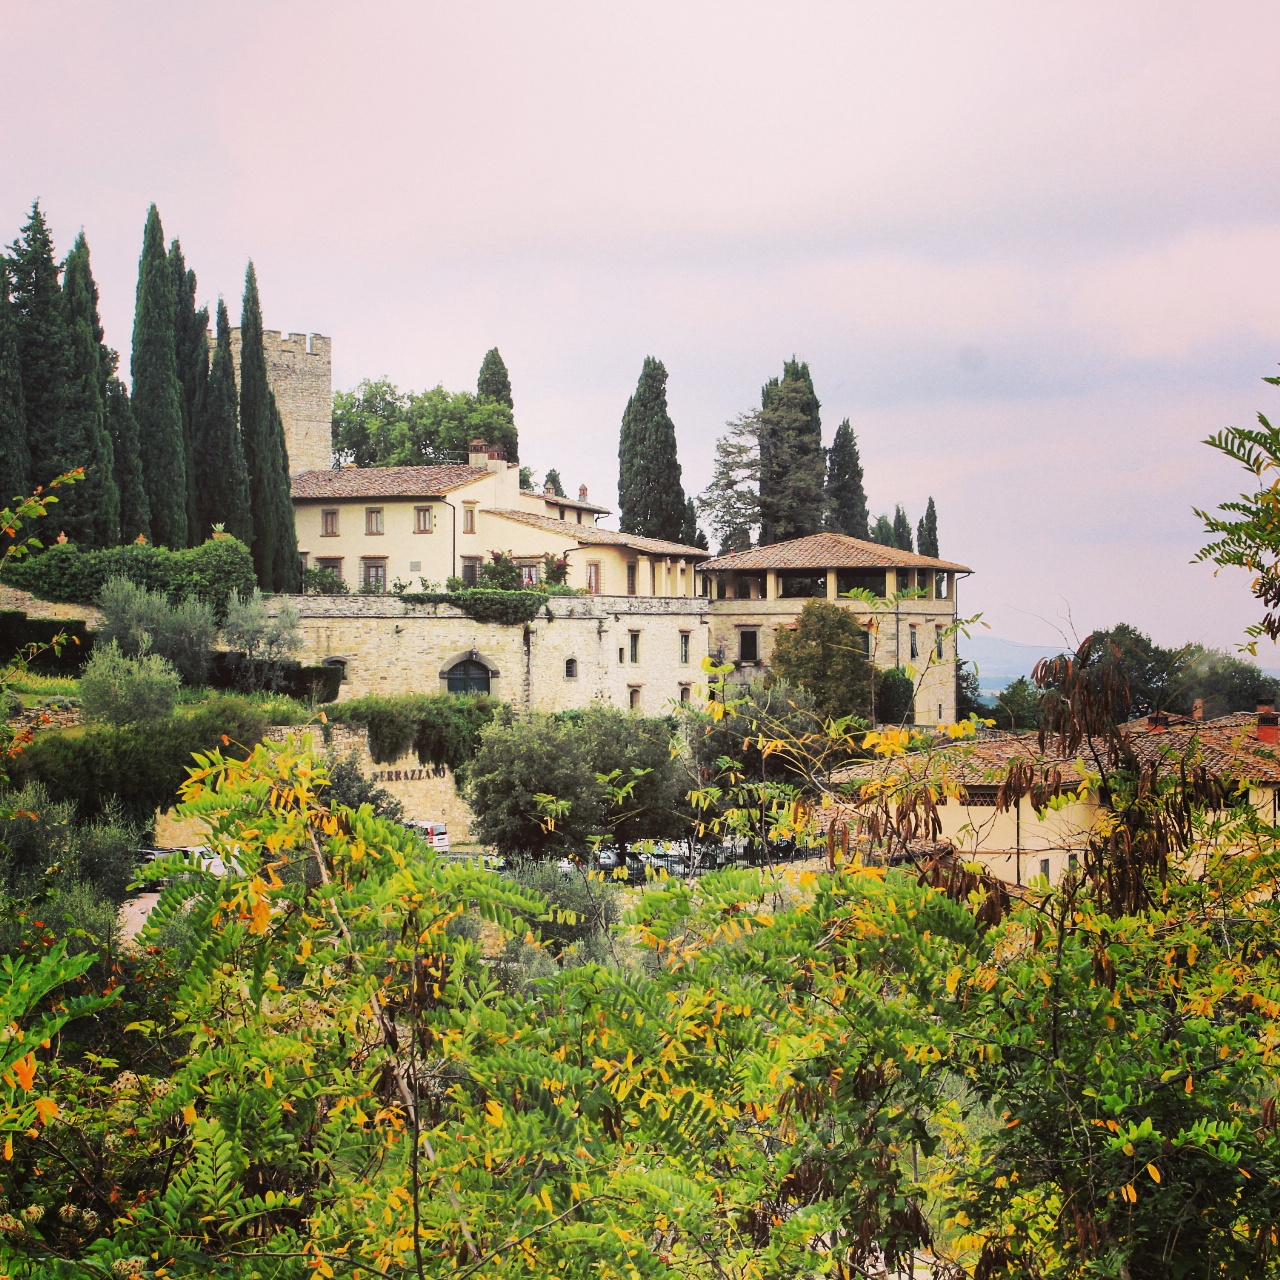 On the Chianti Classico road: Castello di Verrazzano